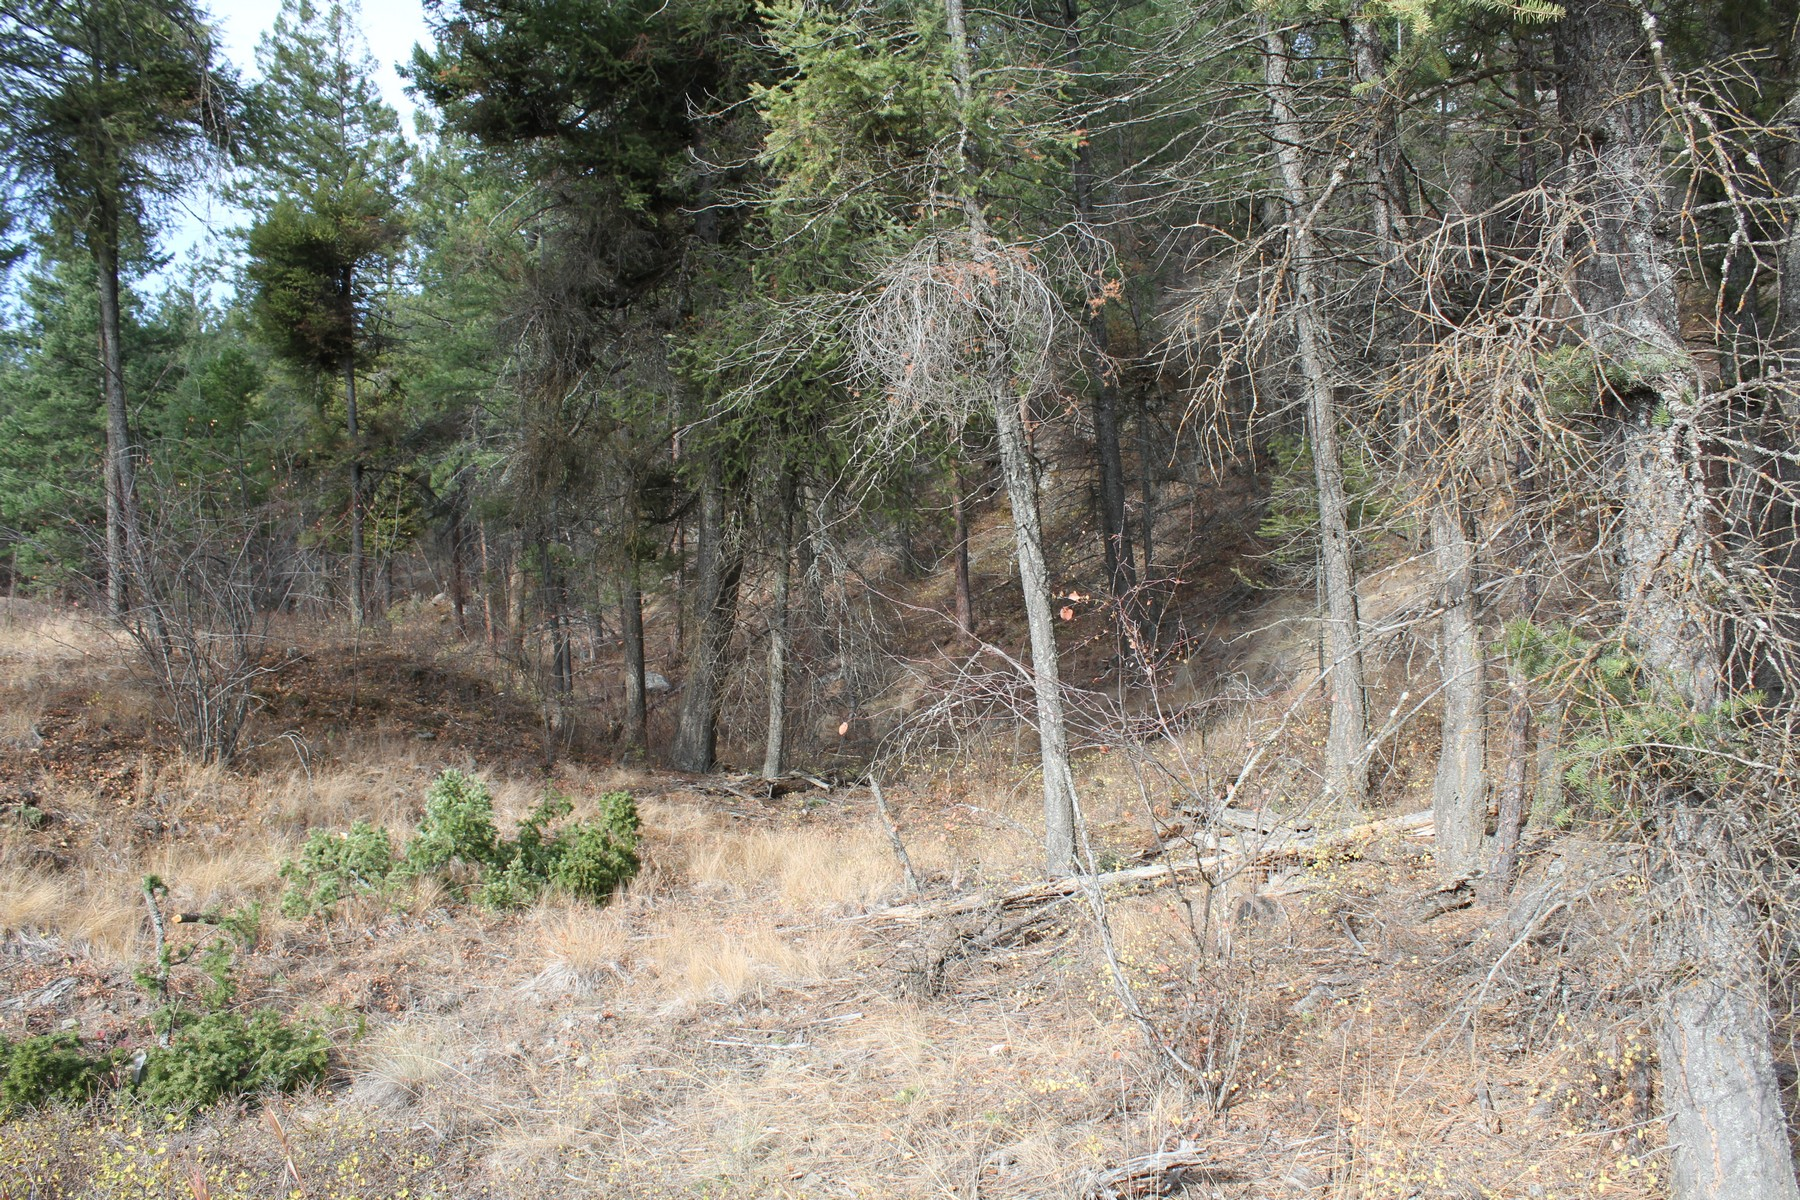 Land for Sale at 416 S 416 S Eighty Drive , Somers, MT 59932 416 S Eighty Dr Somers, Montana 59932 United States